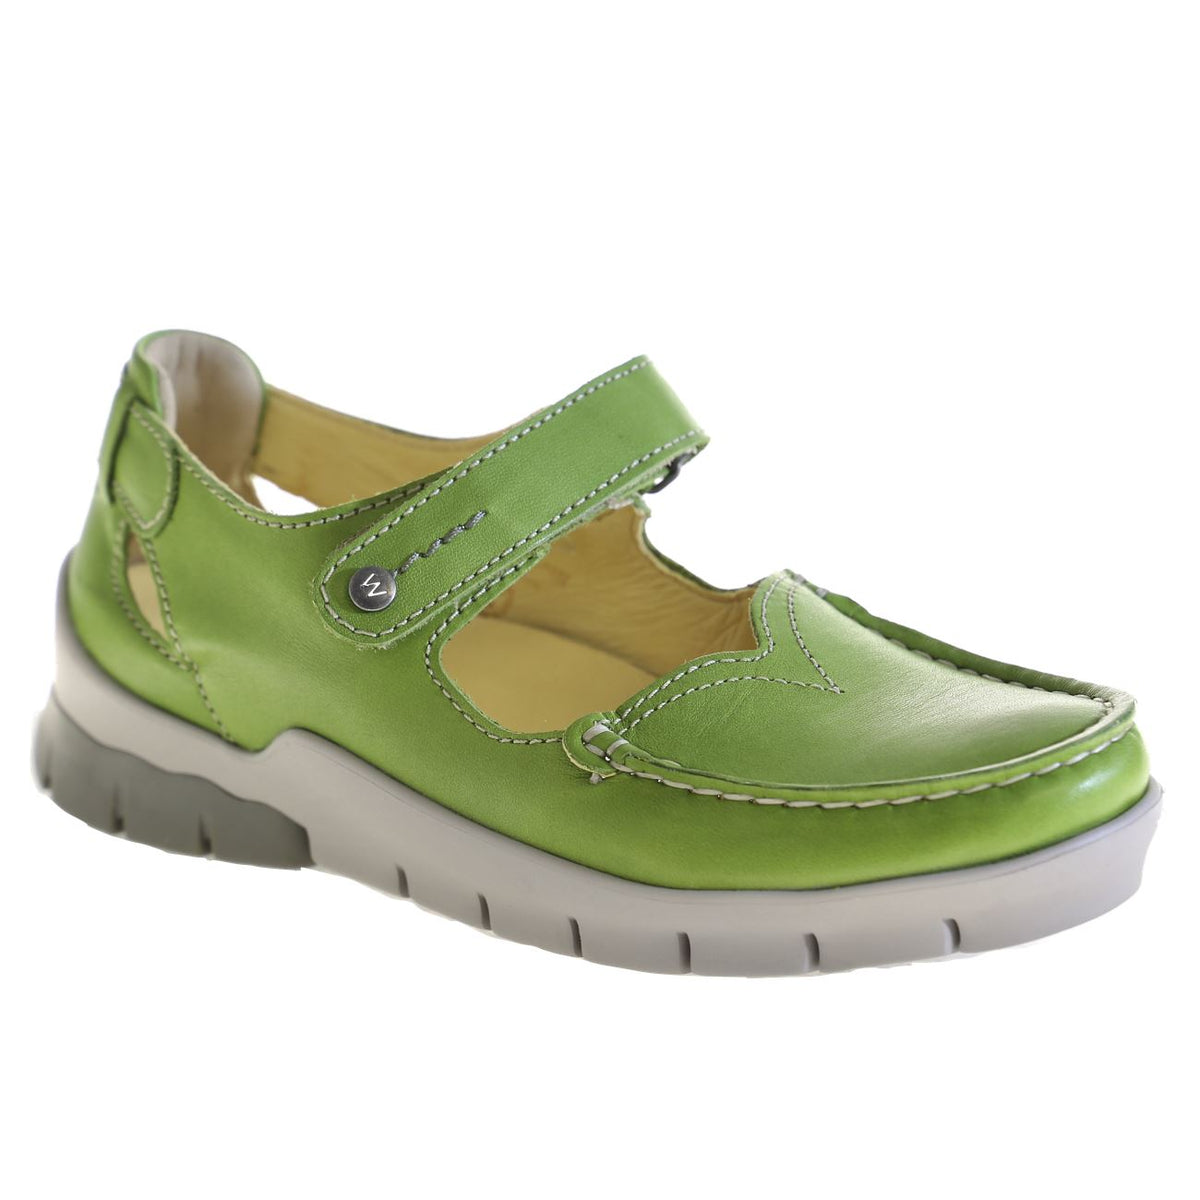 Wolky, Polina, Shoes, Leather, 70-750 Lime Shoes Wolky 70-750 Lime 38